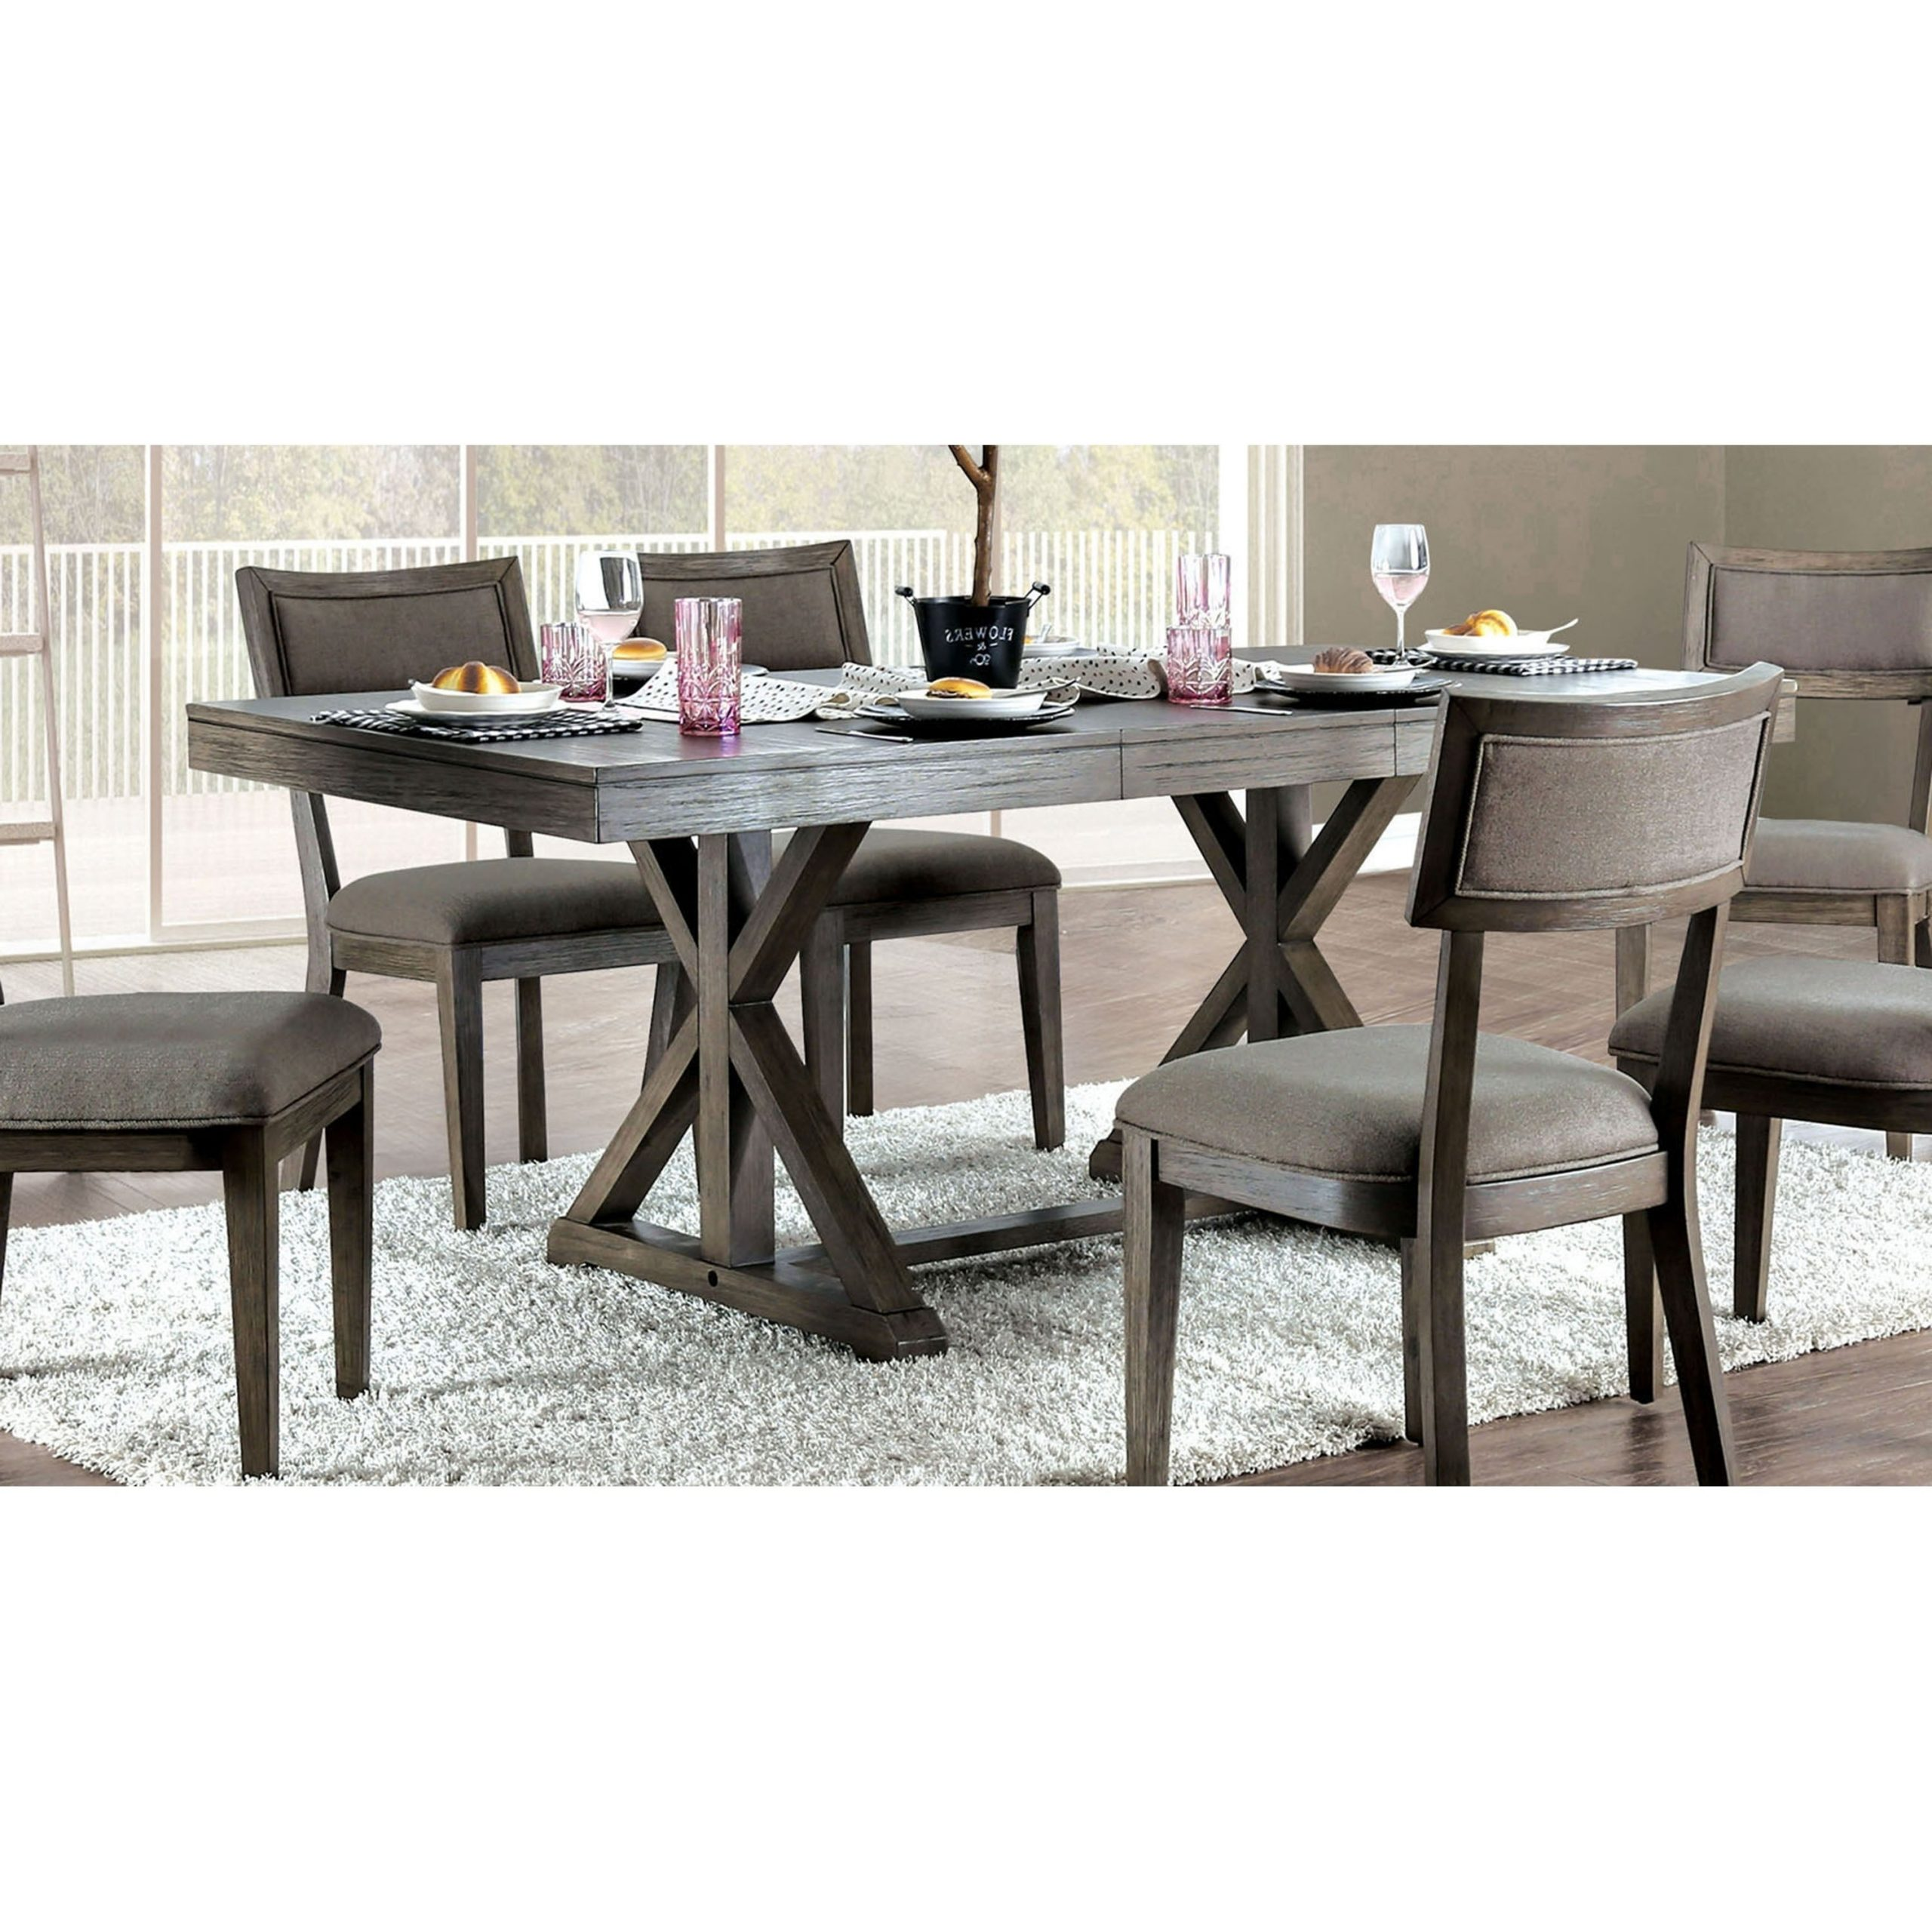 Well Liked Carbon Loft Valjean Grey Wood Dining Table Pertaining To Charcoal Transitional 6 Seating Rectangular Dining Tables (Gallery 28 of 30)